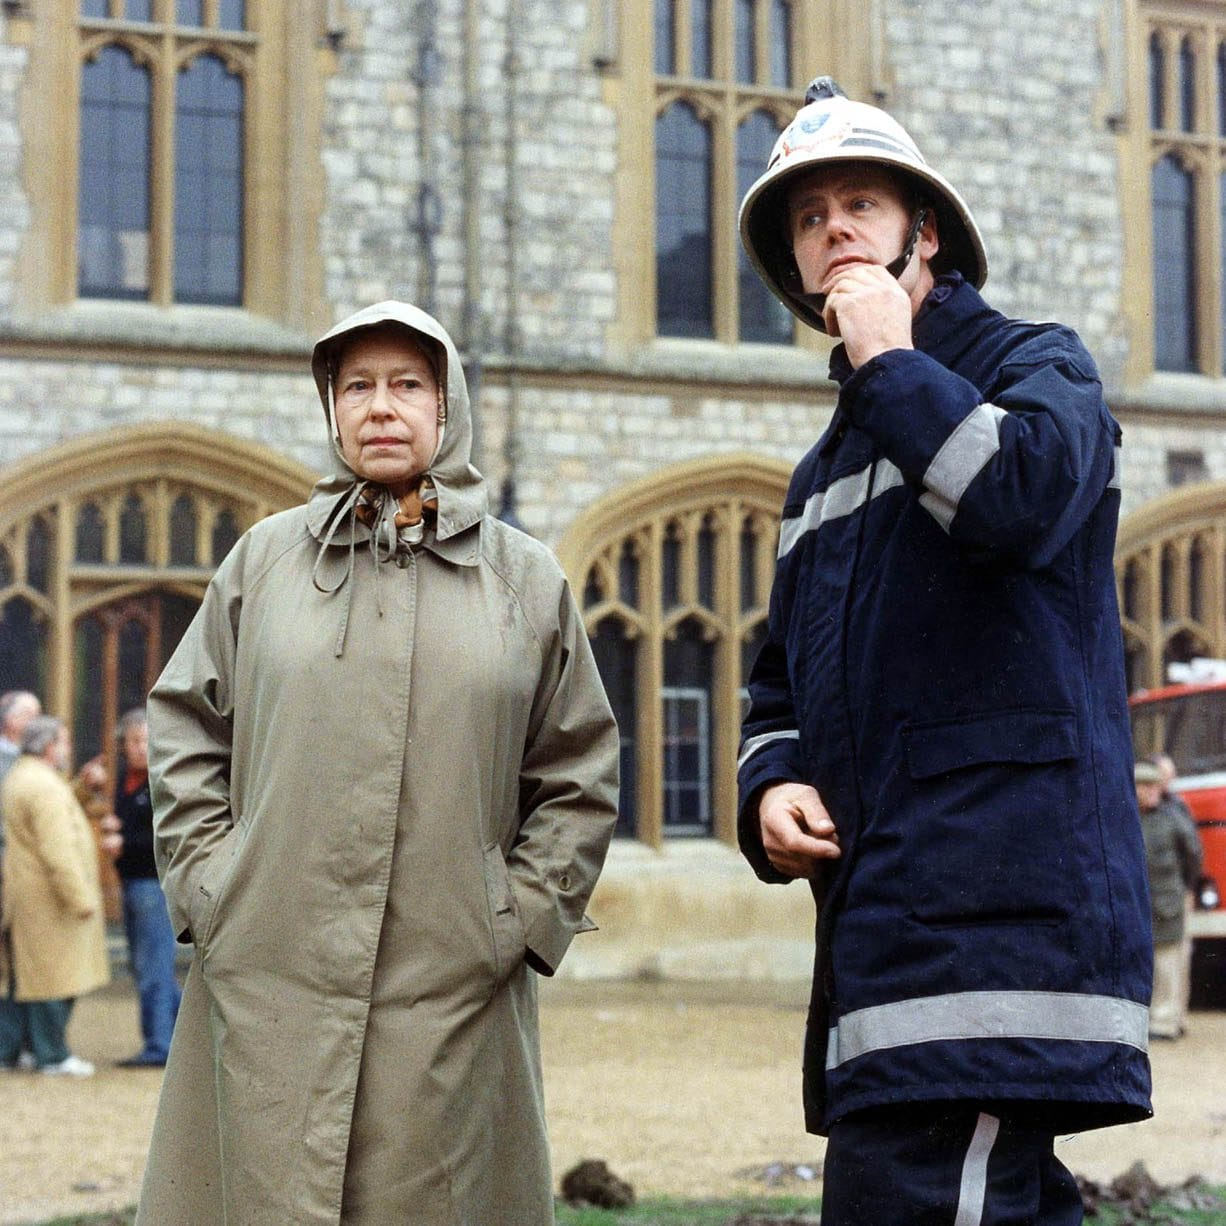 The Queen Inspecting The Damage Caused By The Fire At